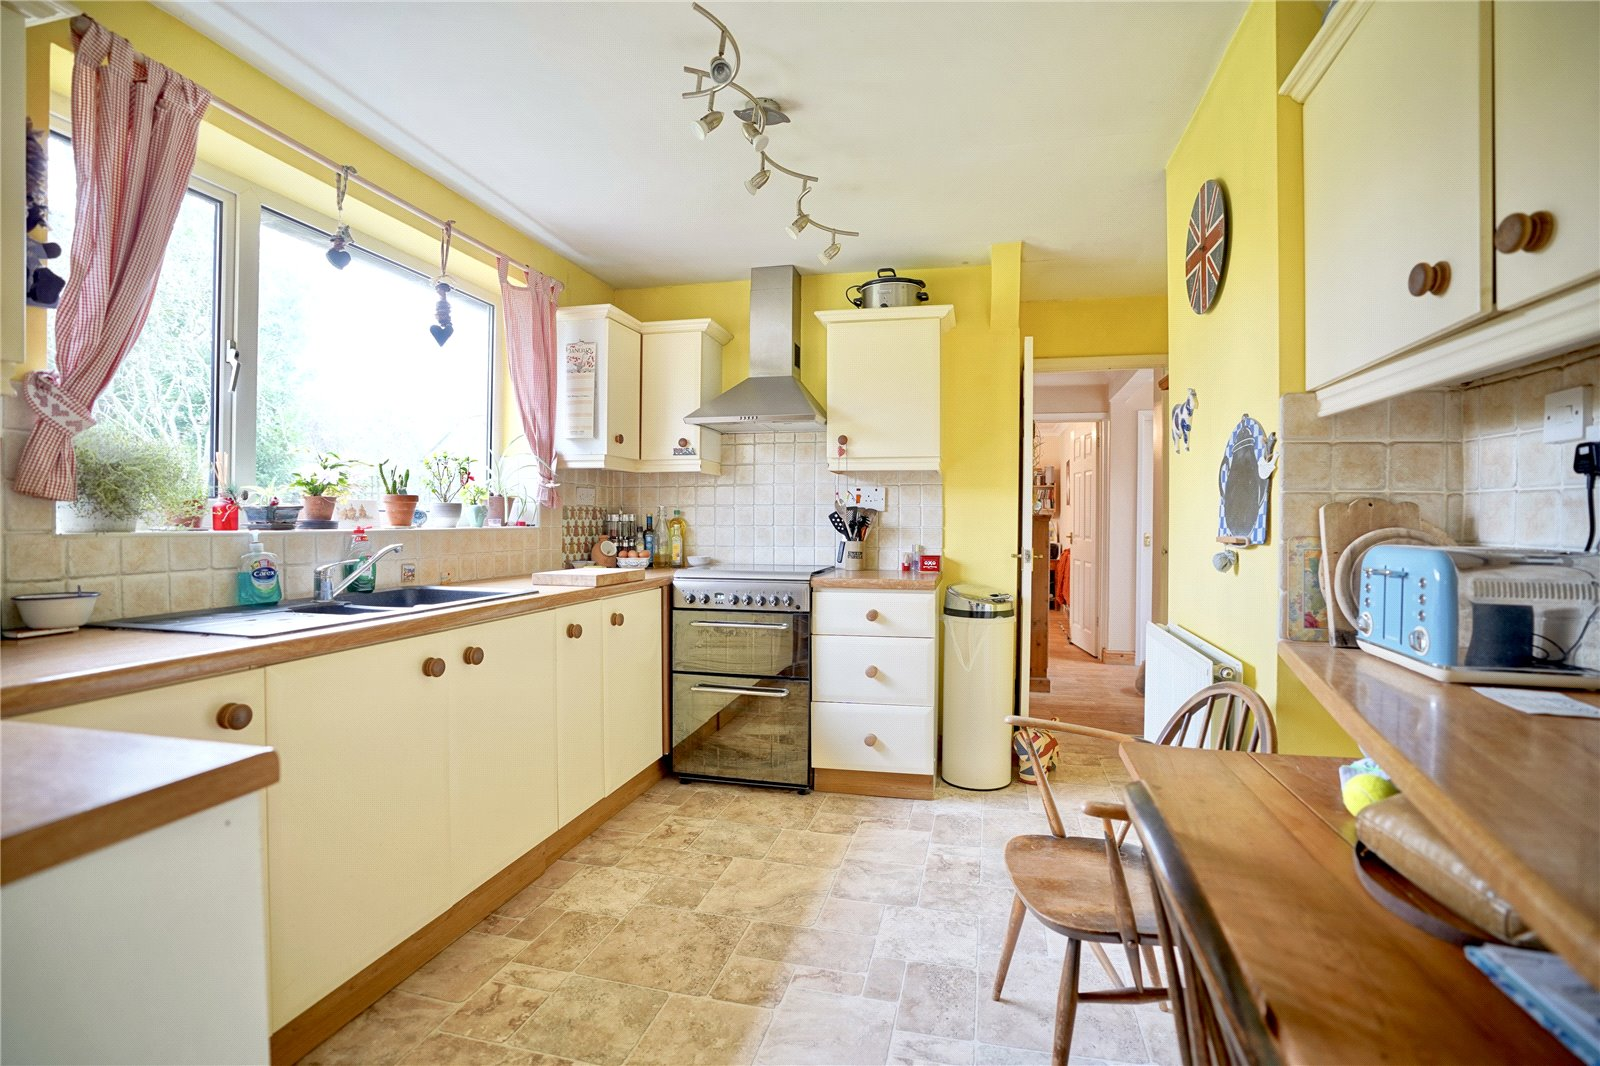 3 bed house for sale in Hemingford Grey, PE28 9BS  - Property Image 5